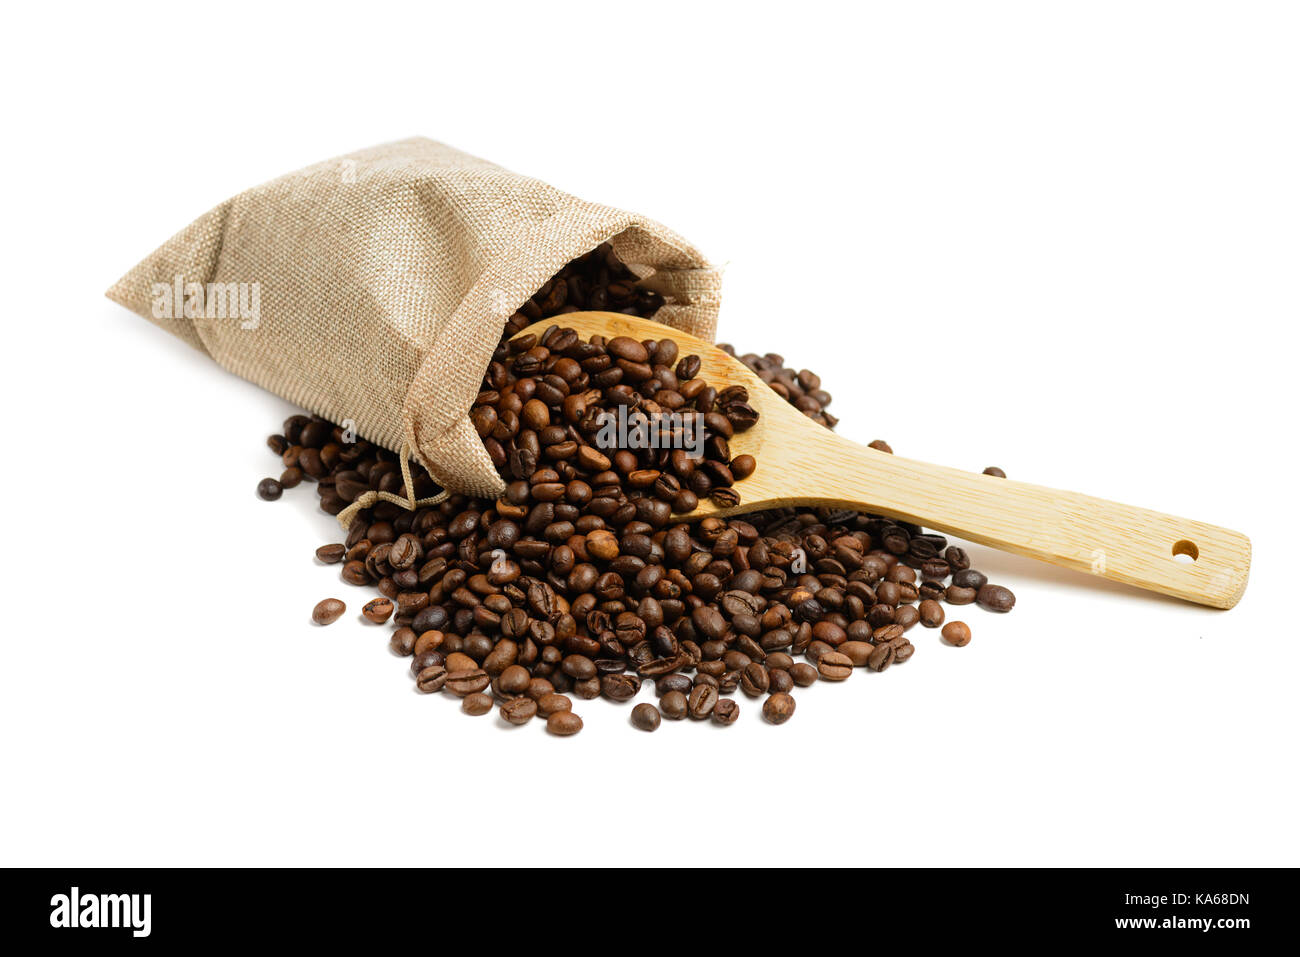 Coffee beans in jute sack  with wooden spoon isolated on white background - Stock Image